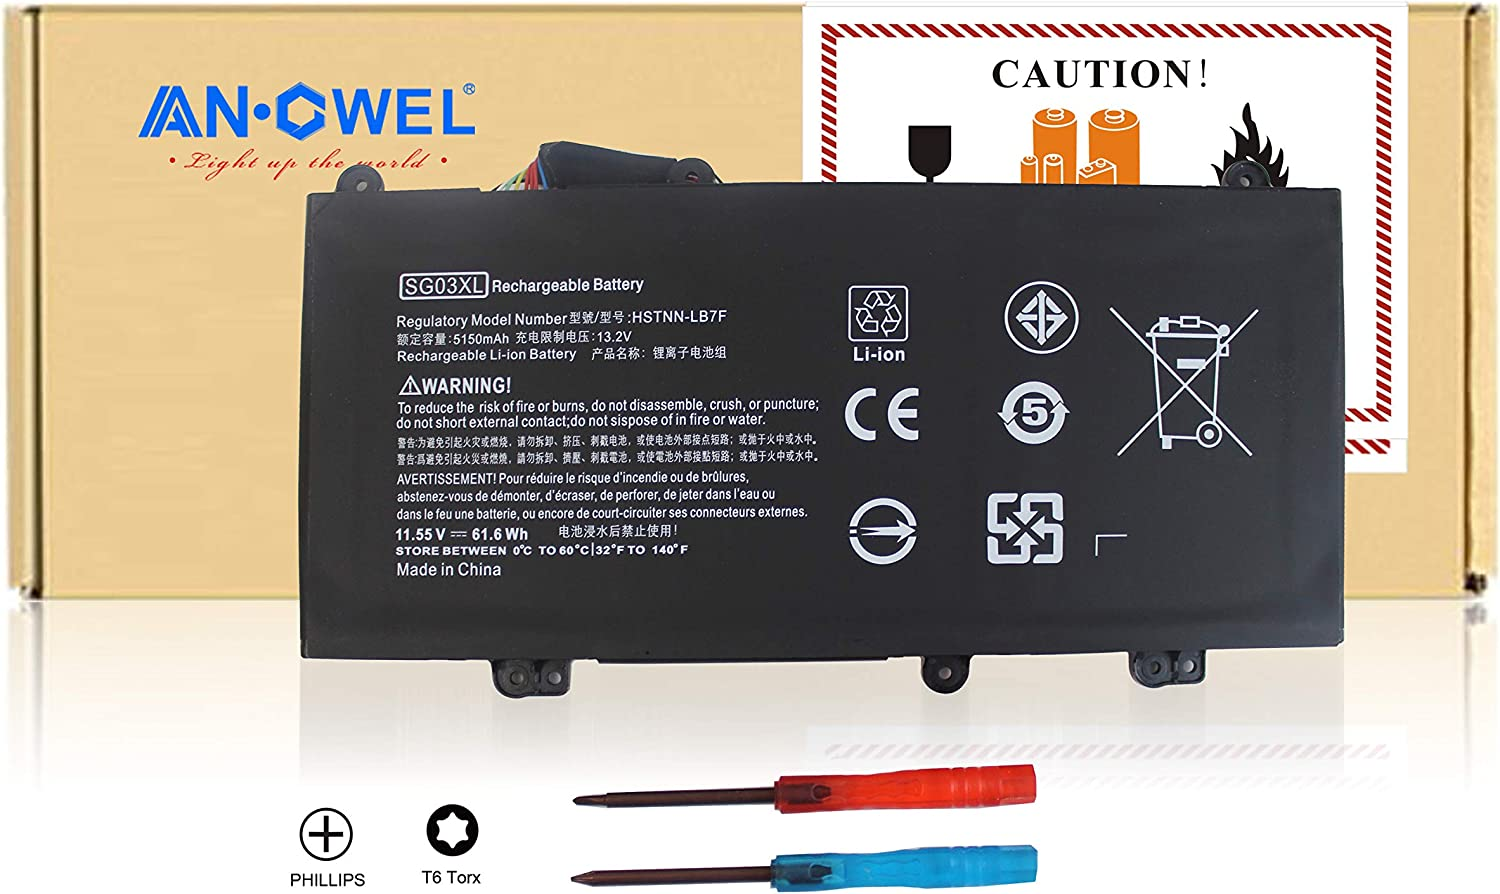 Angwel New SG03XL Laptop Battery for HP Envy M7-U 17t-U000 M7-U009DX 17-U011NR Notebook,Fit for P/N: TPN-I126 849315-850 849049-421 HSTNN-LB7F HSTNN-LB7E SG03041XL SG03061XL[11.1V 61WH] –1